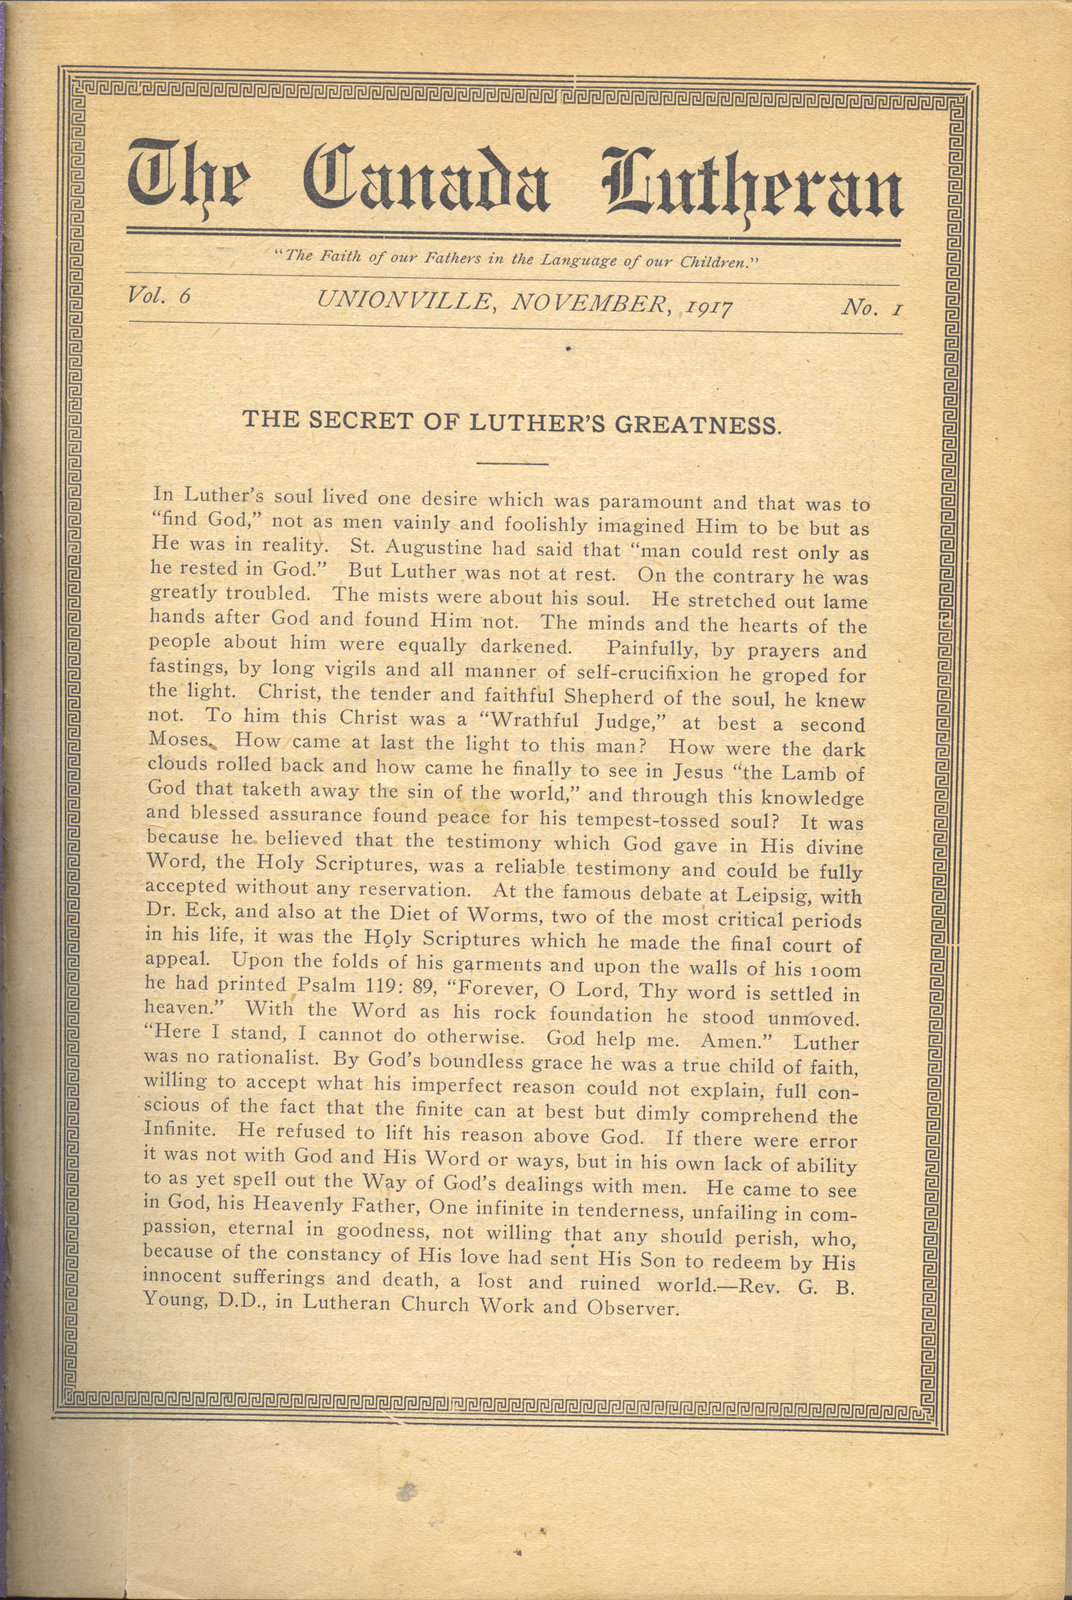 The Canada Lutheran, vol. 6, no. 1, November 1917